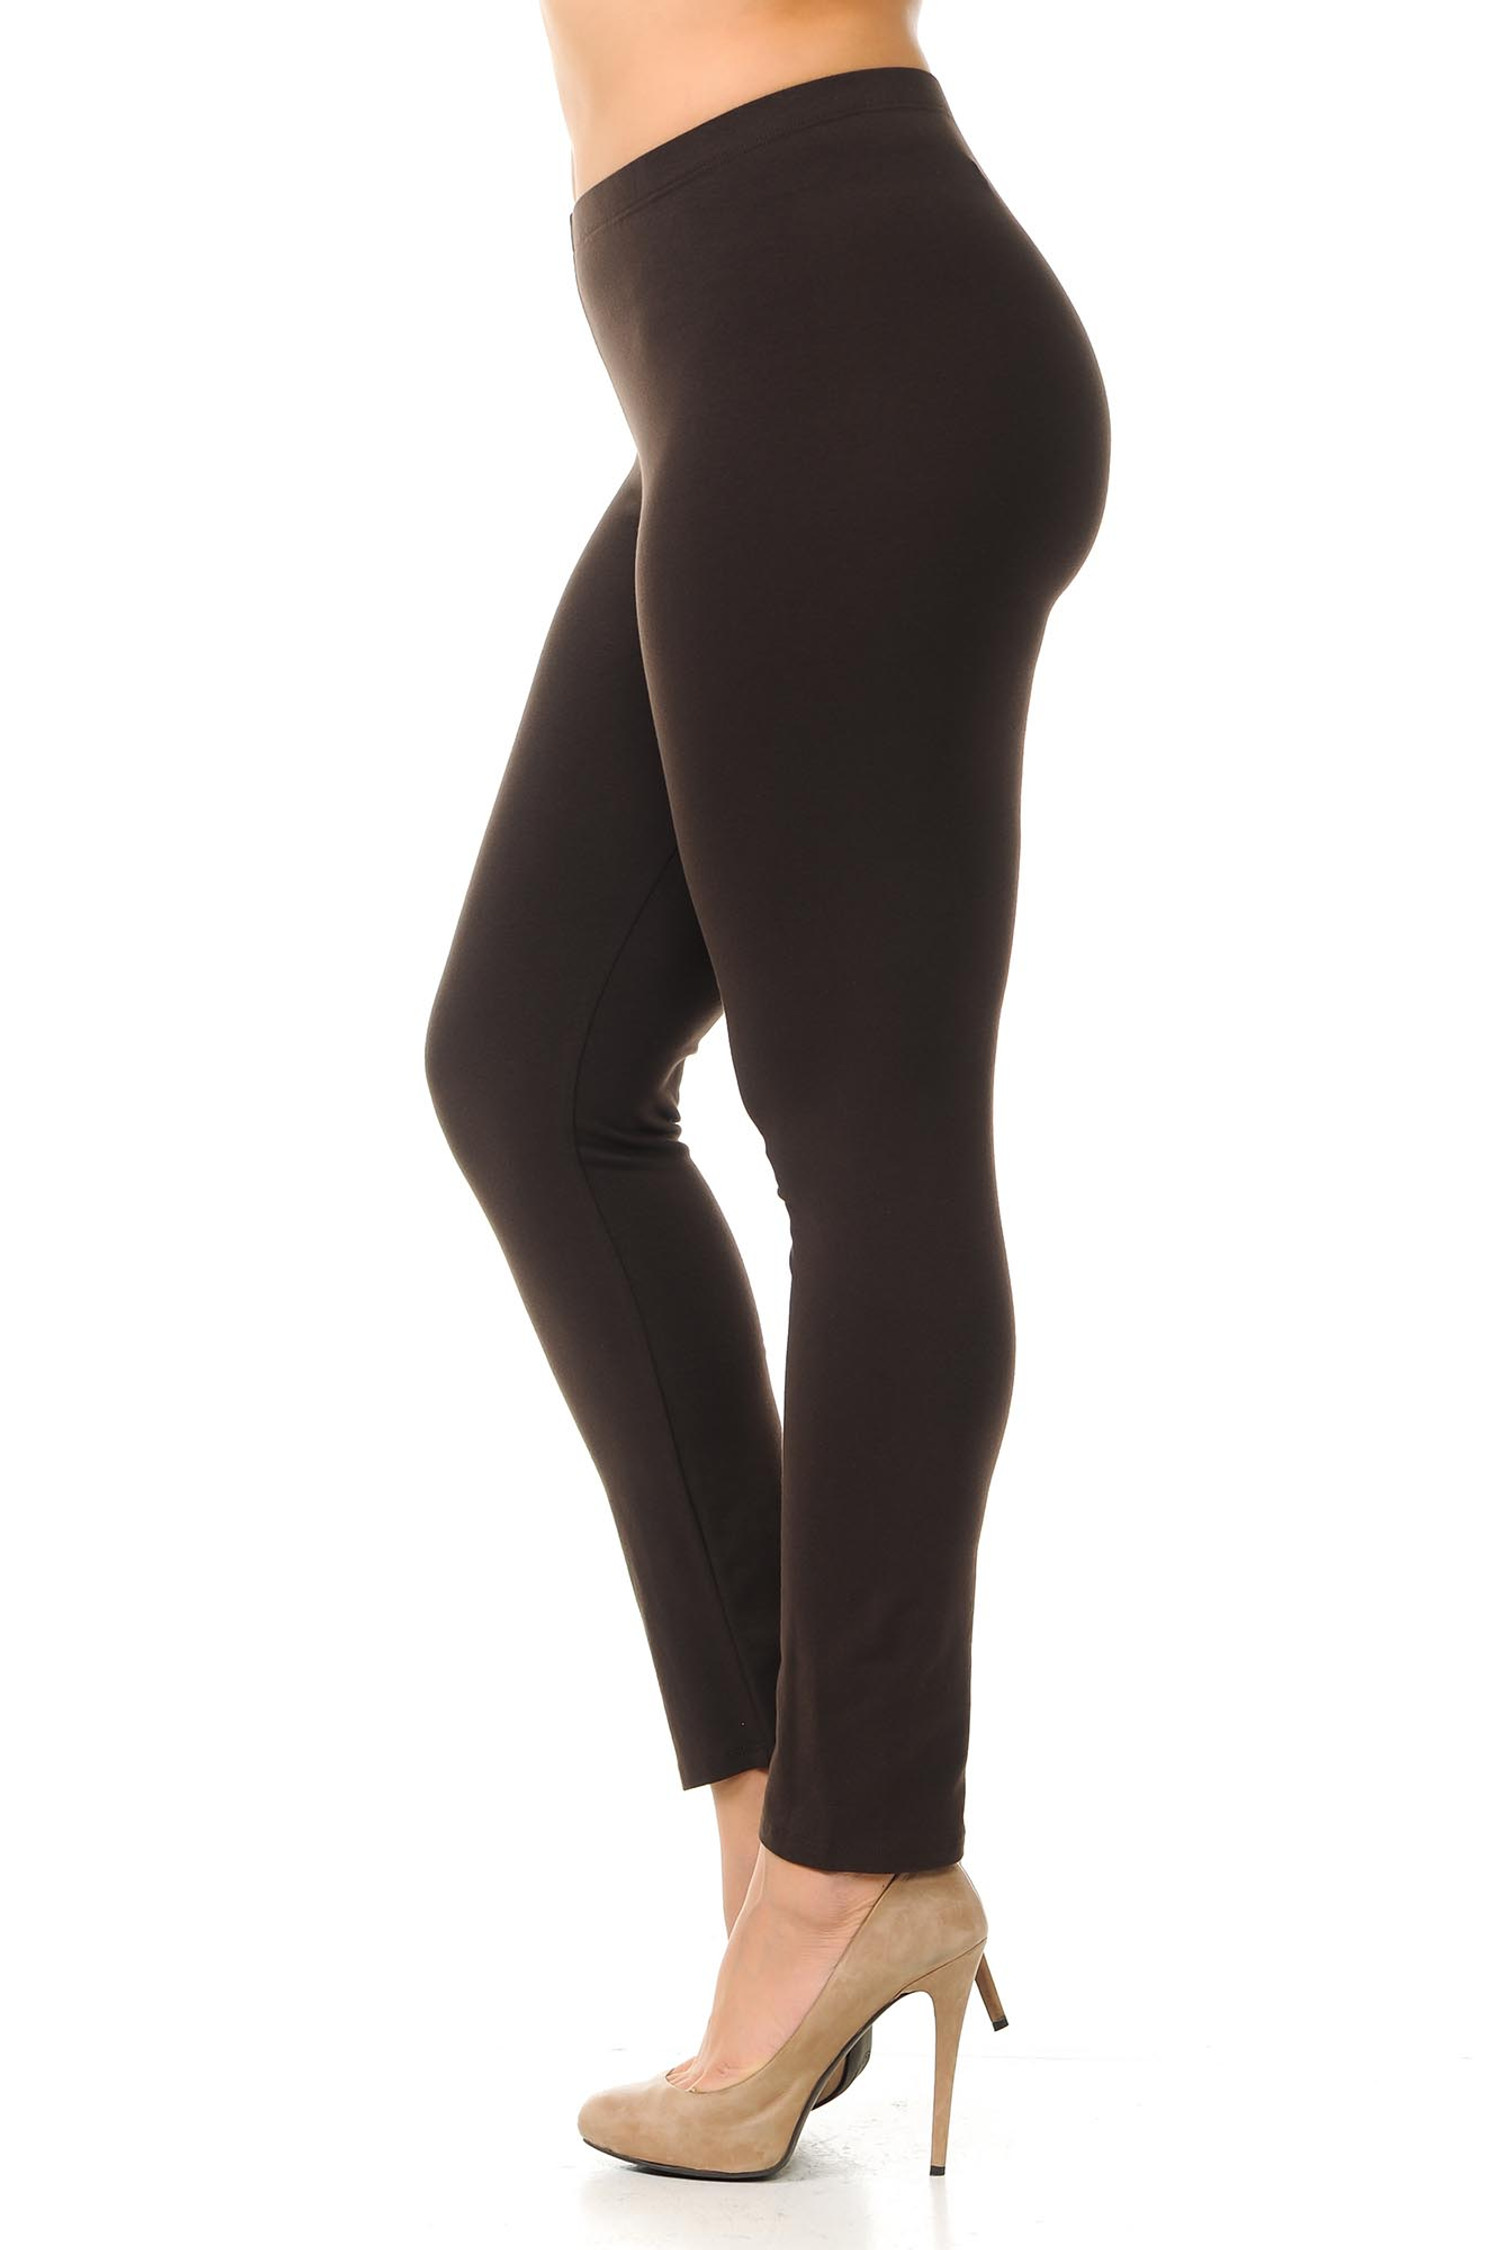 Left side view of  brown plus size USA Cotton Full Length Leggings.